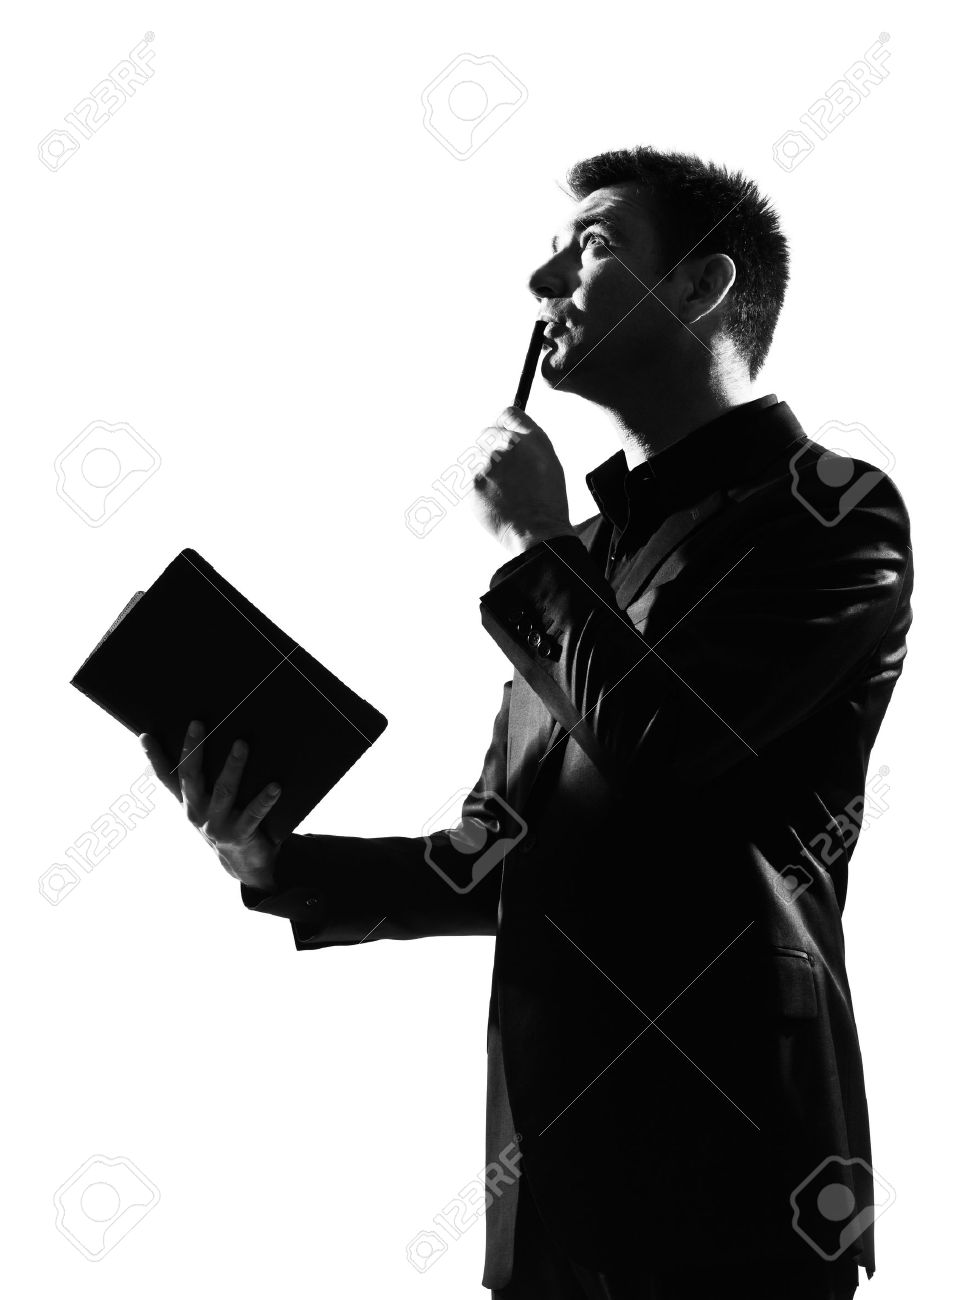 silhouette caucasian business man with note pad thinking expressing behavior full length on studio isolated white background Stock Photo - 9800096